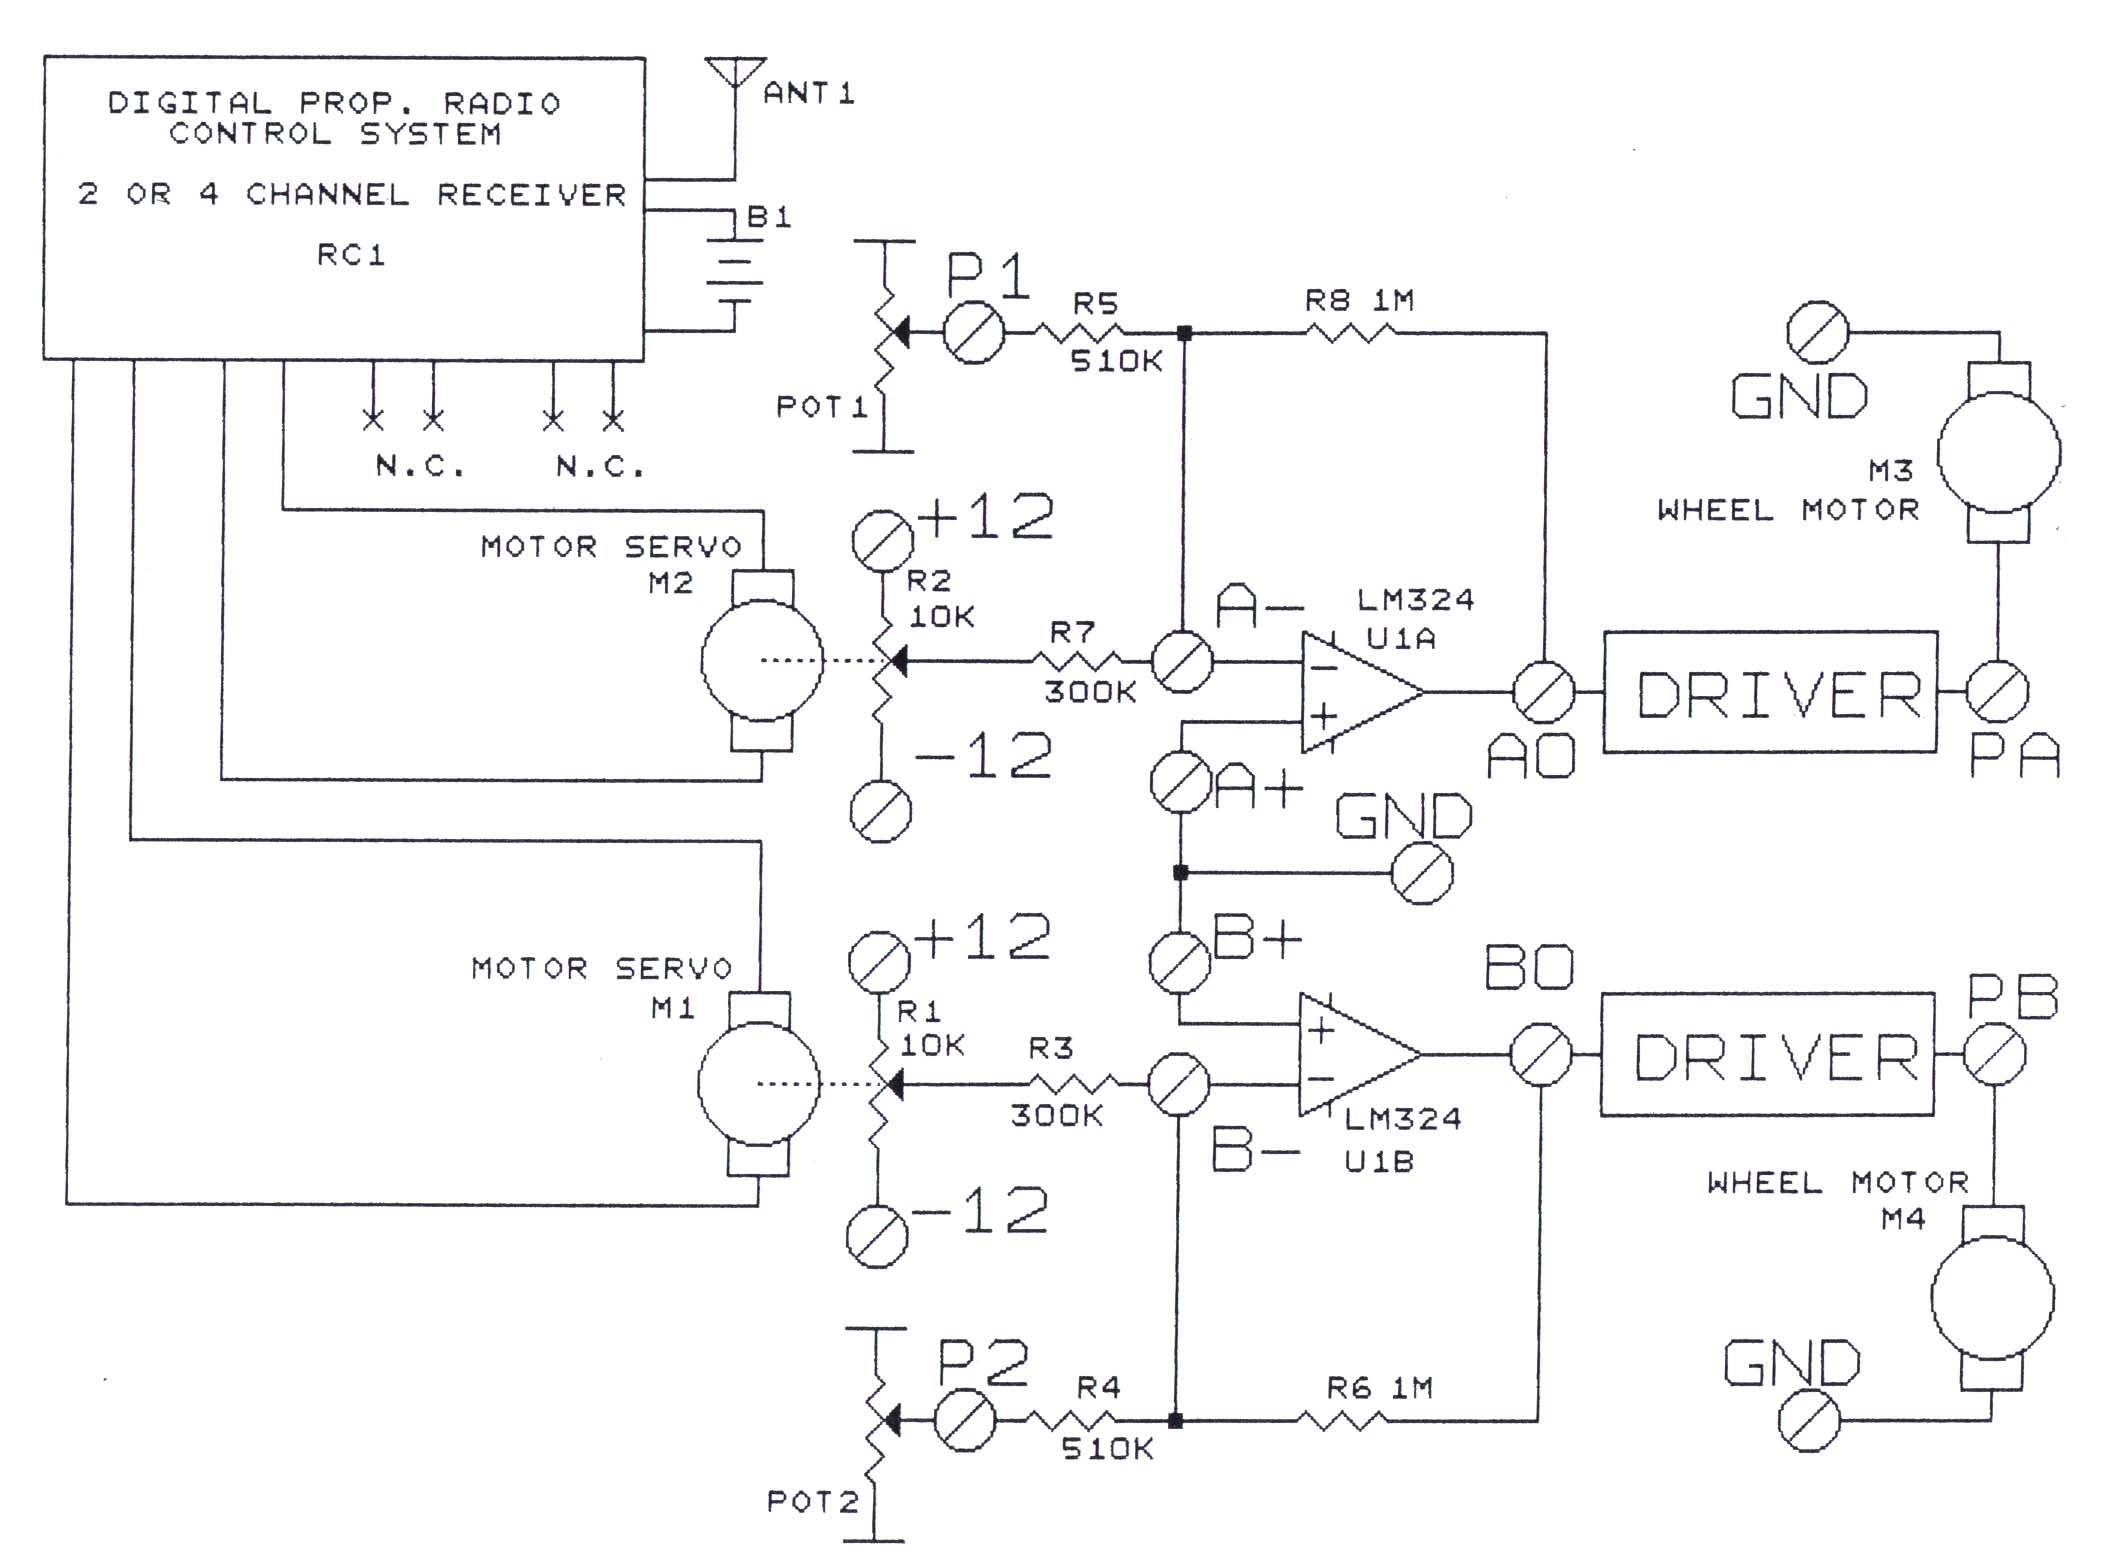 hight resolution of  instructional diagram for radio remote control using the power amplifier board